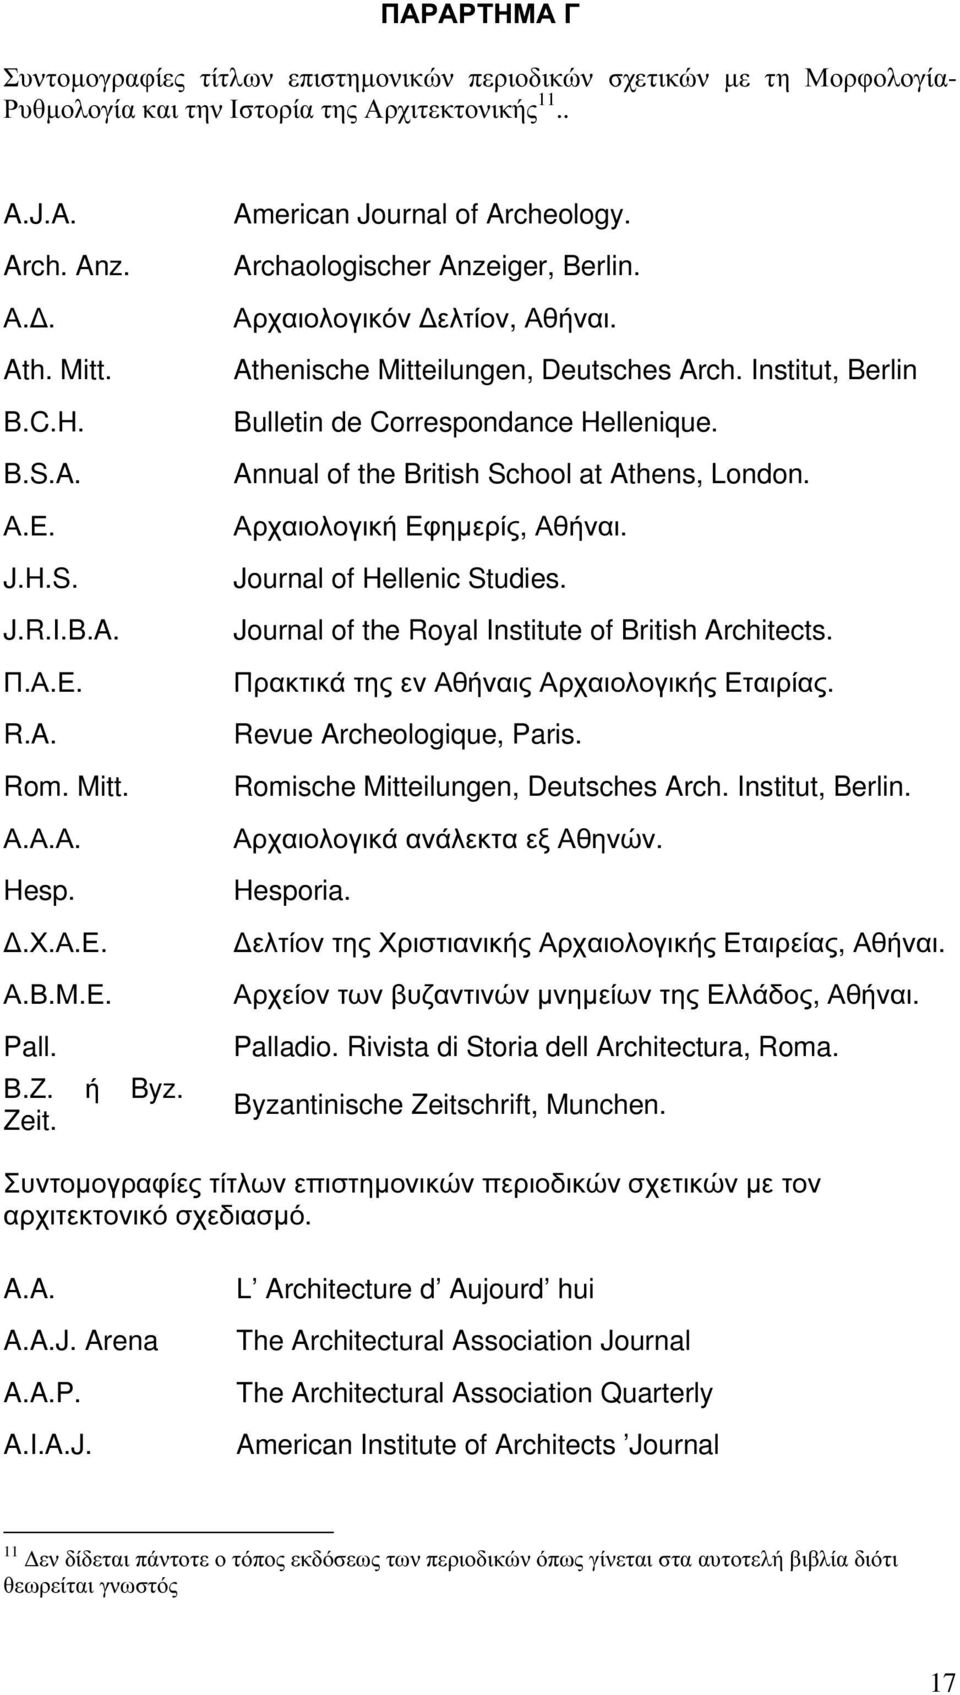 Athenische Mitteilungen, Deutsches Arch. Institut, Berlin Bulletin de Correspondance Hellenique. Annual of the British School at Athens, London. Αρχαιολογική Εφηµερίς, Αθήναι.